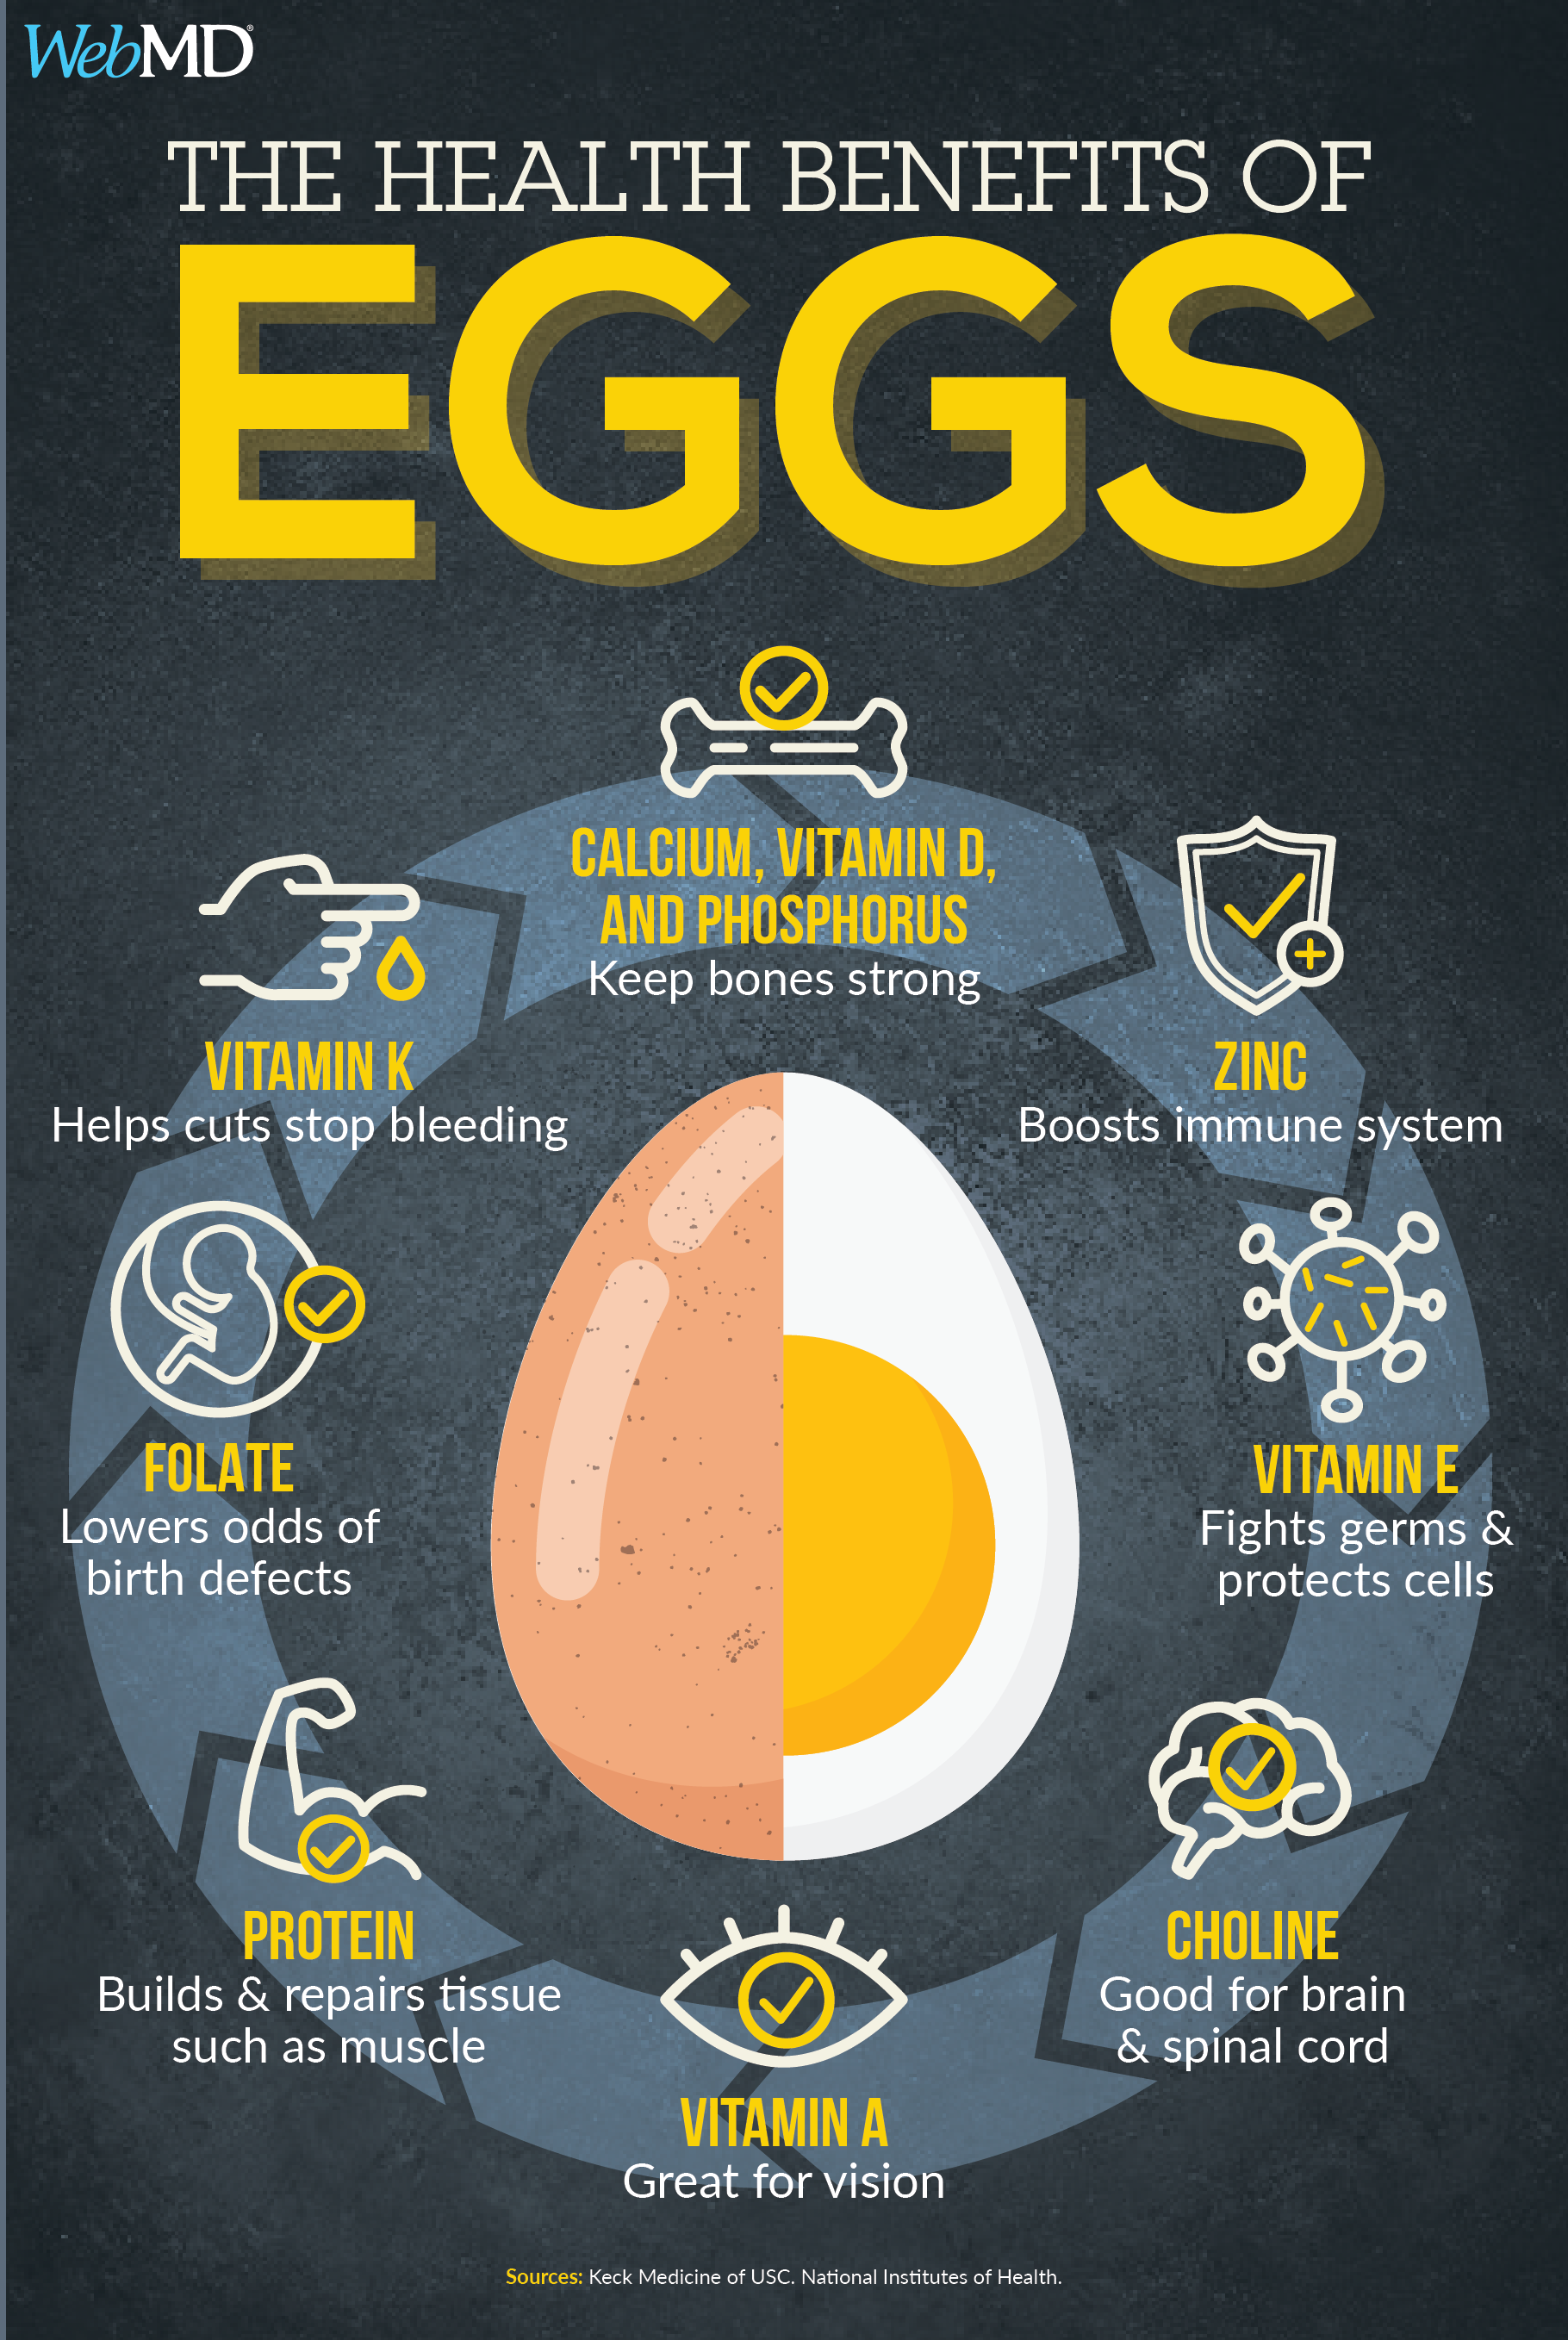 Health Benefits of Eggs No matter how you prefer them -- scrambled, poached, or hardboiled -- eggs are packed with protein and important nutrients.No matter how you prefer them -- scrambled, poached, or hardboiled -- eggs are packed with protein and important nutrients.